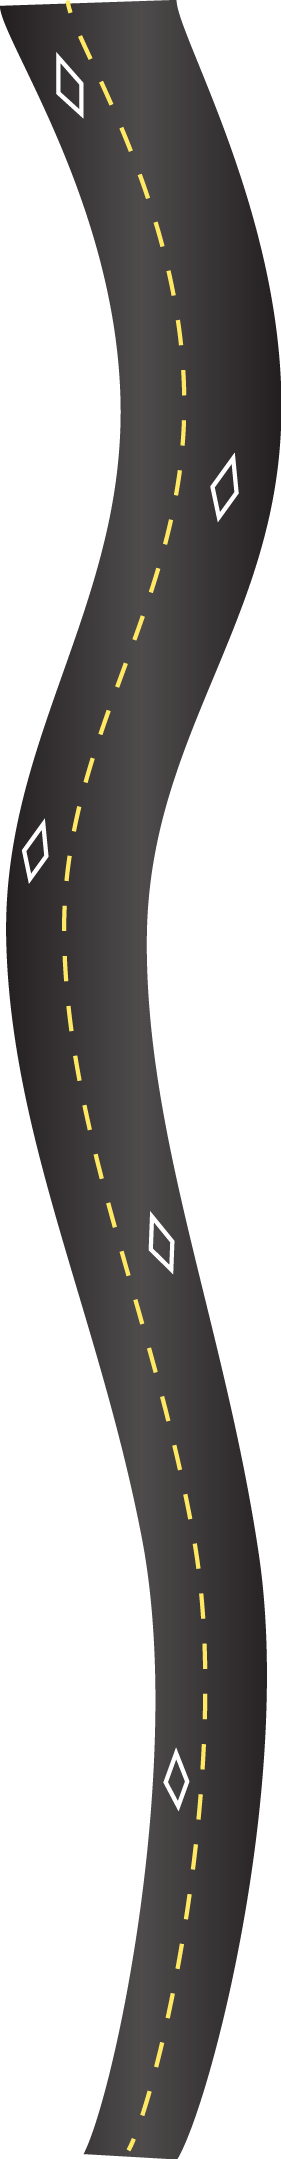 HOV road lane